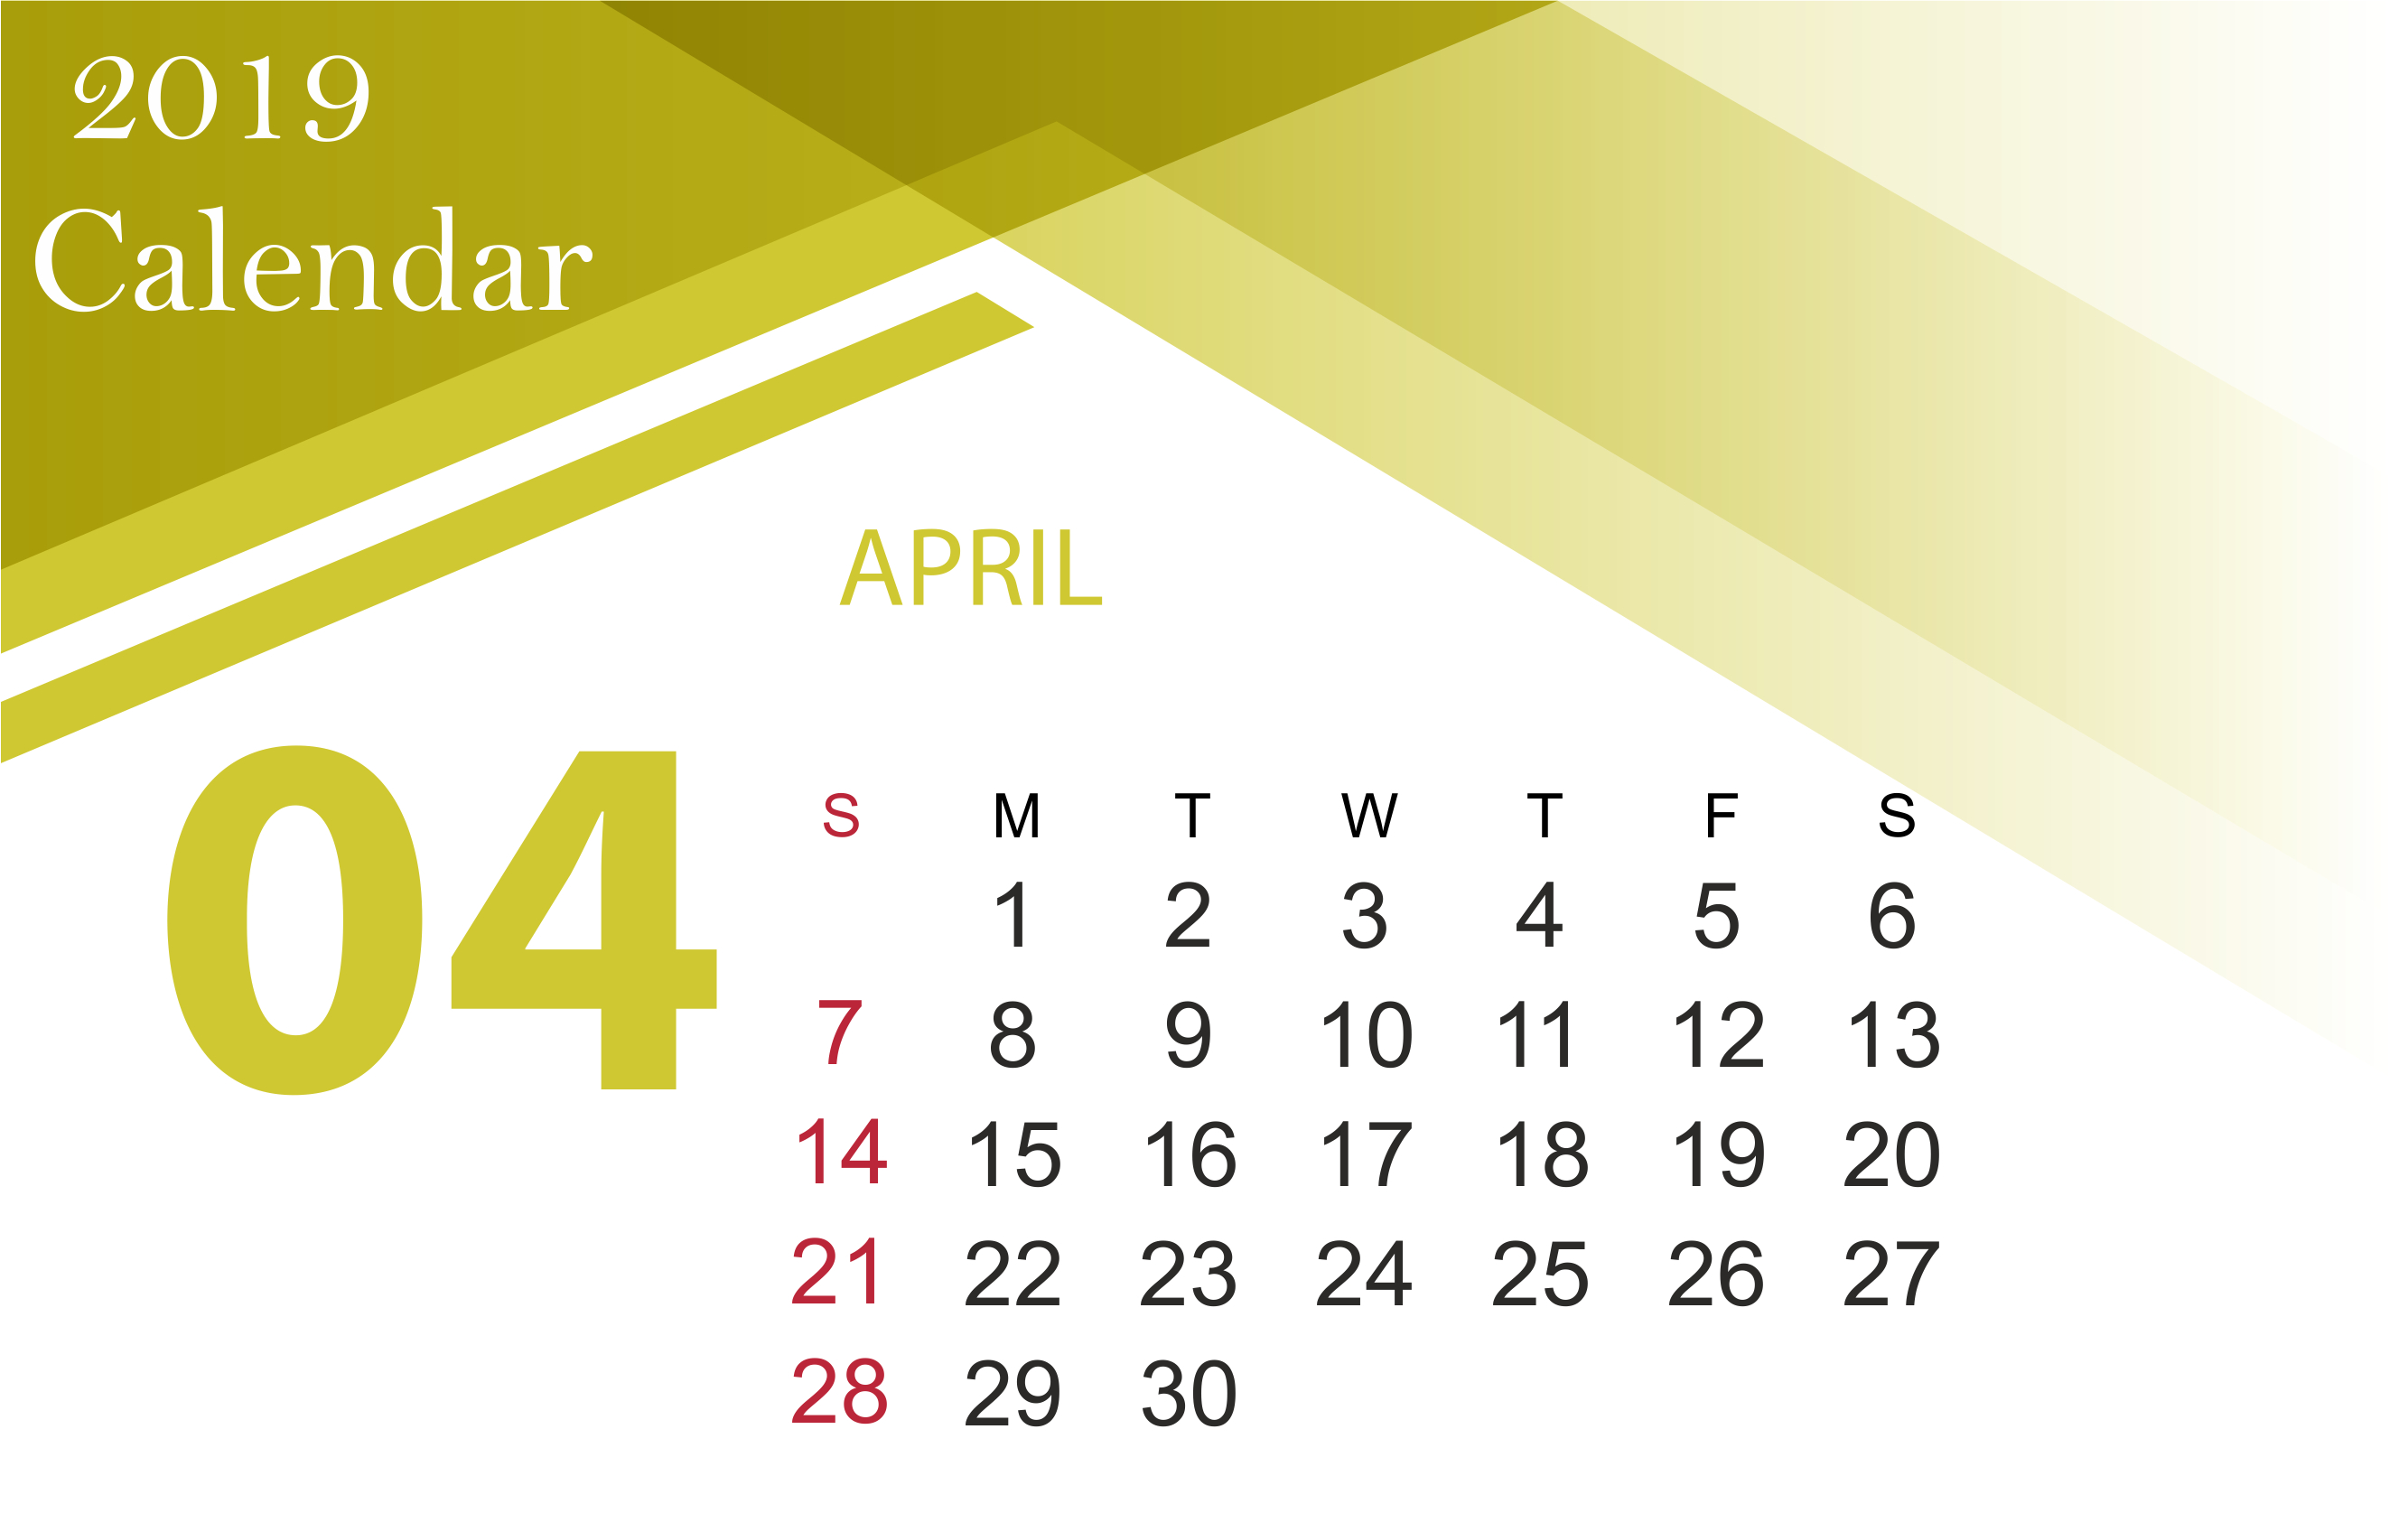 April 2019 Calendar Printable [Free] | Site Provides Calendar April 6 2019 Calendar